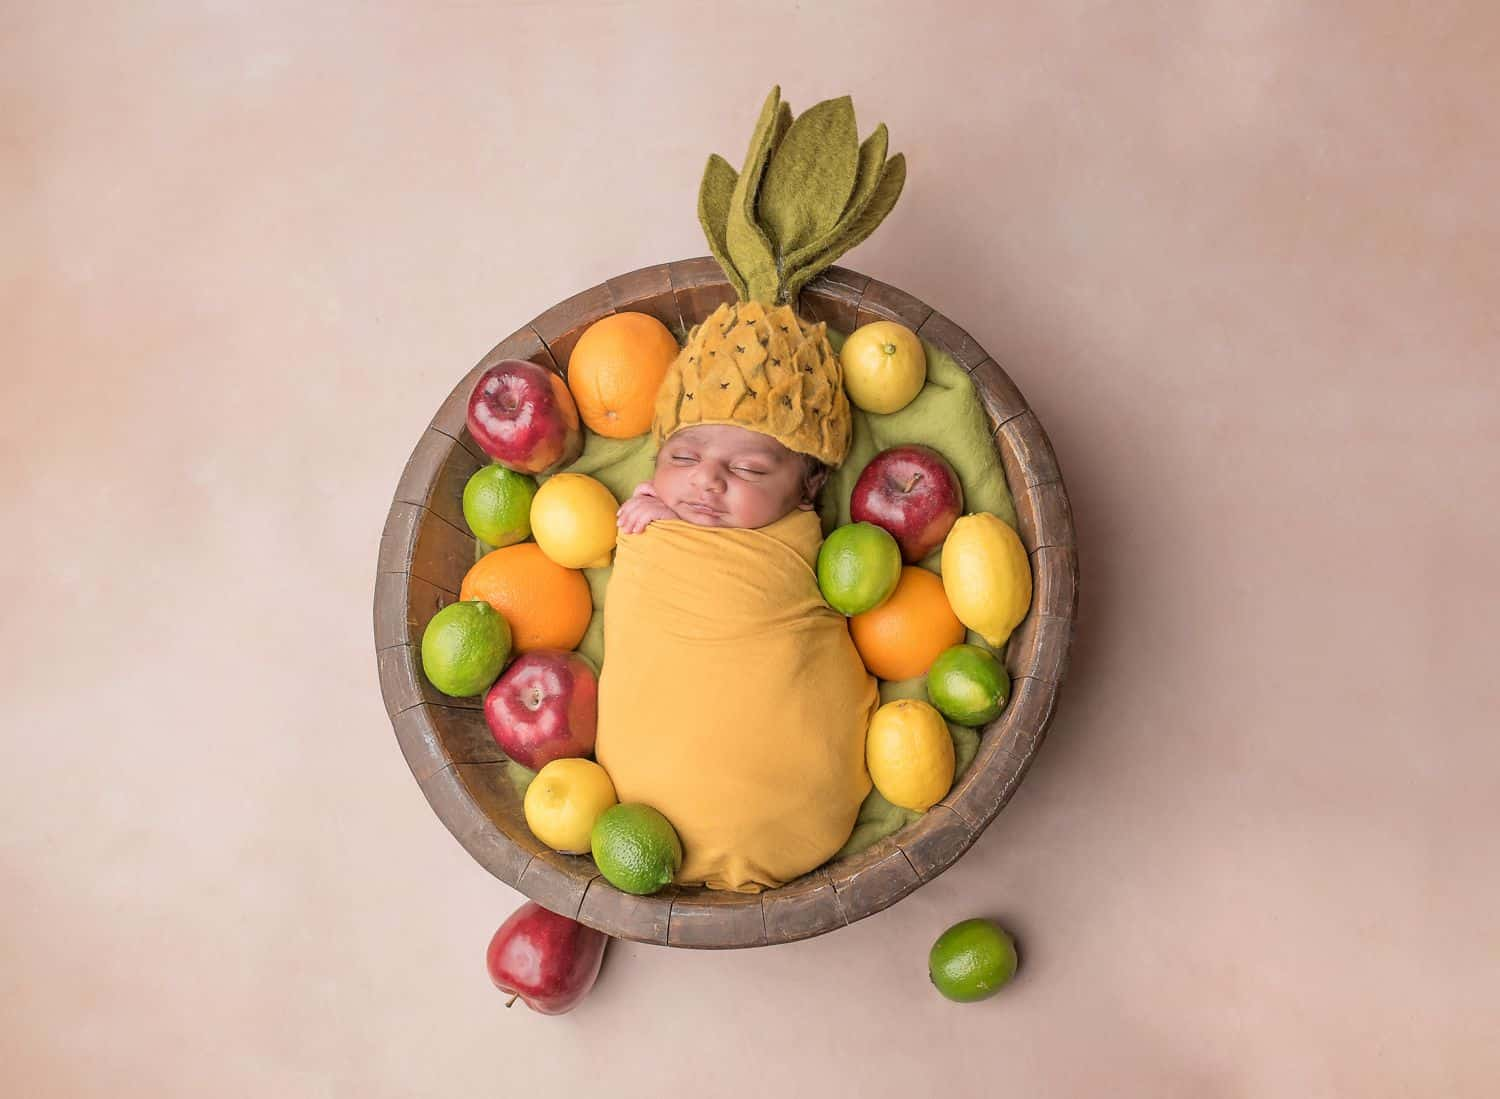 The best newborn photography props include fun themes like this fruit bowl concept. A newborn baby is wrapped in yellow and swaddled in a wooden bowl. The baby wears a felt pineapple hat and is surrounded by lemons, limes, oranges, and apples.